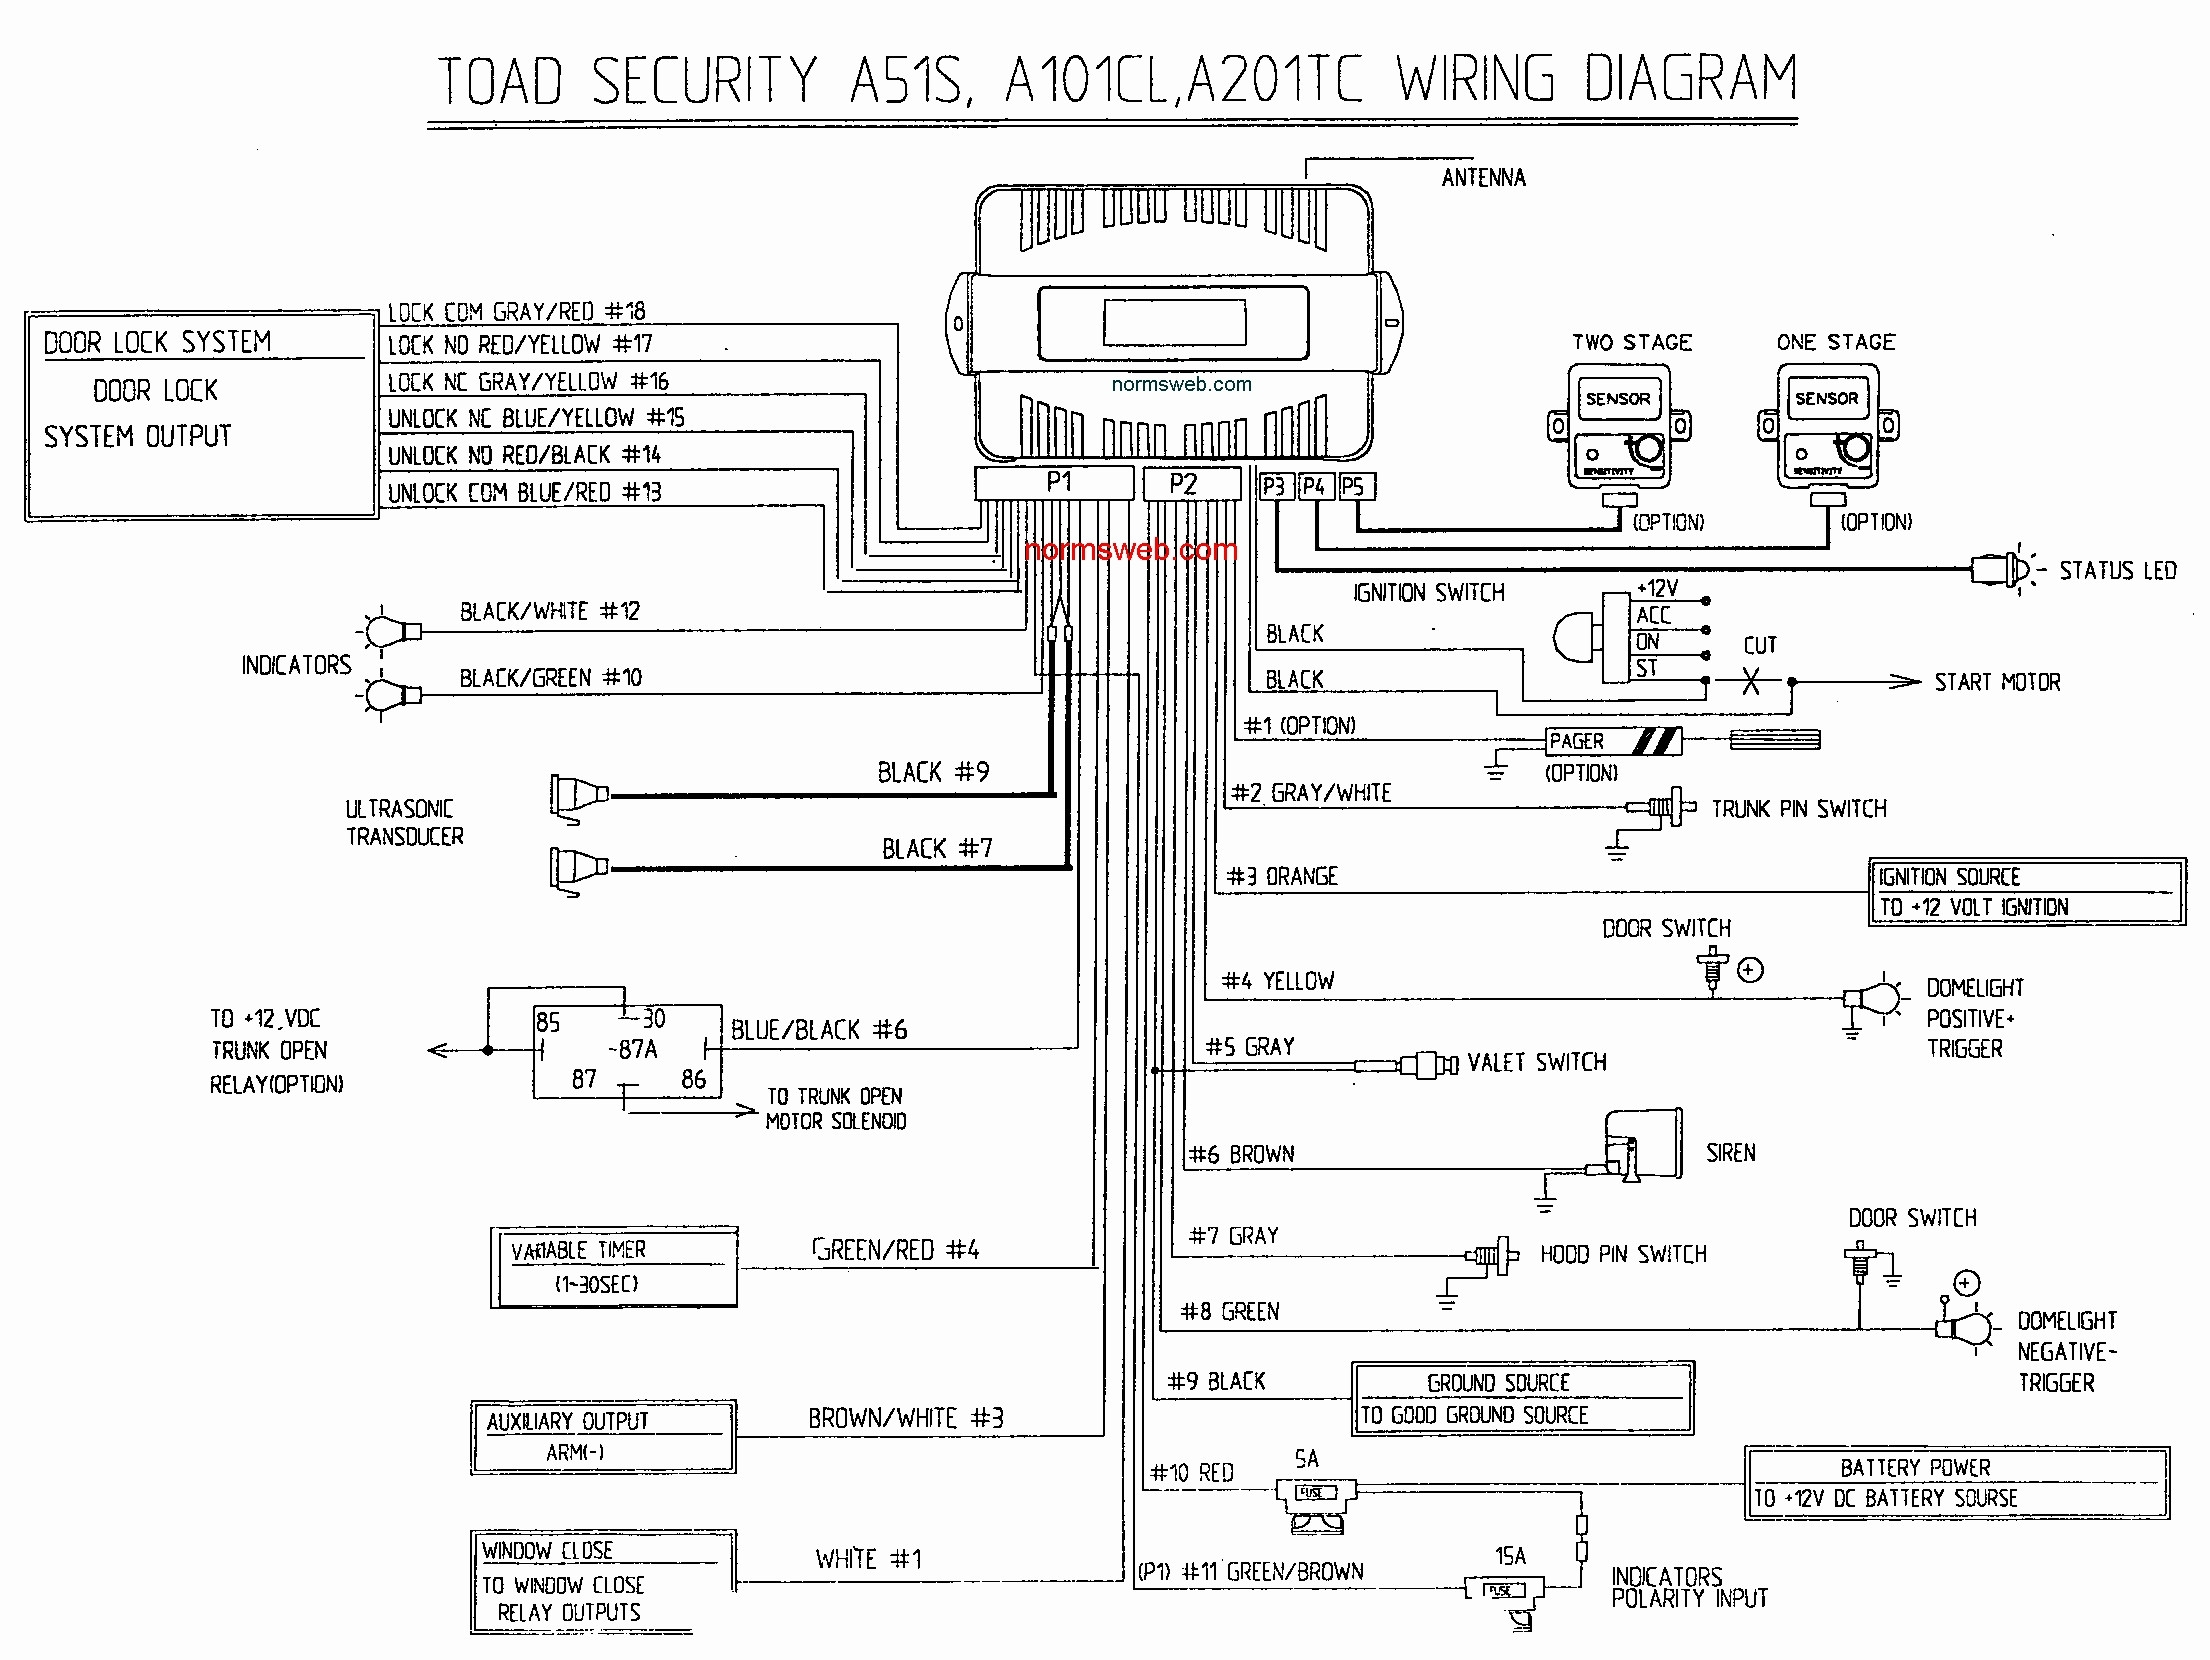 viper 5704 wiring schematics the uptodate wiring diagramSystem Viper Car Alarm Security System Viper Alarm Wiring Diagram #19